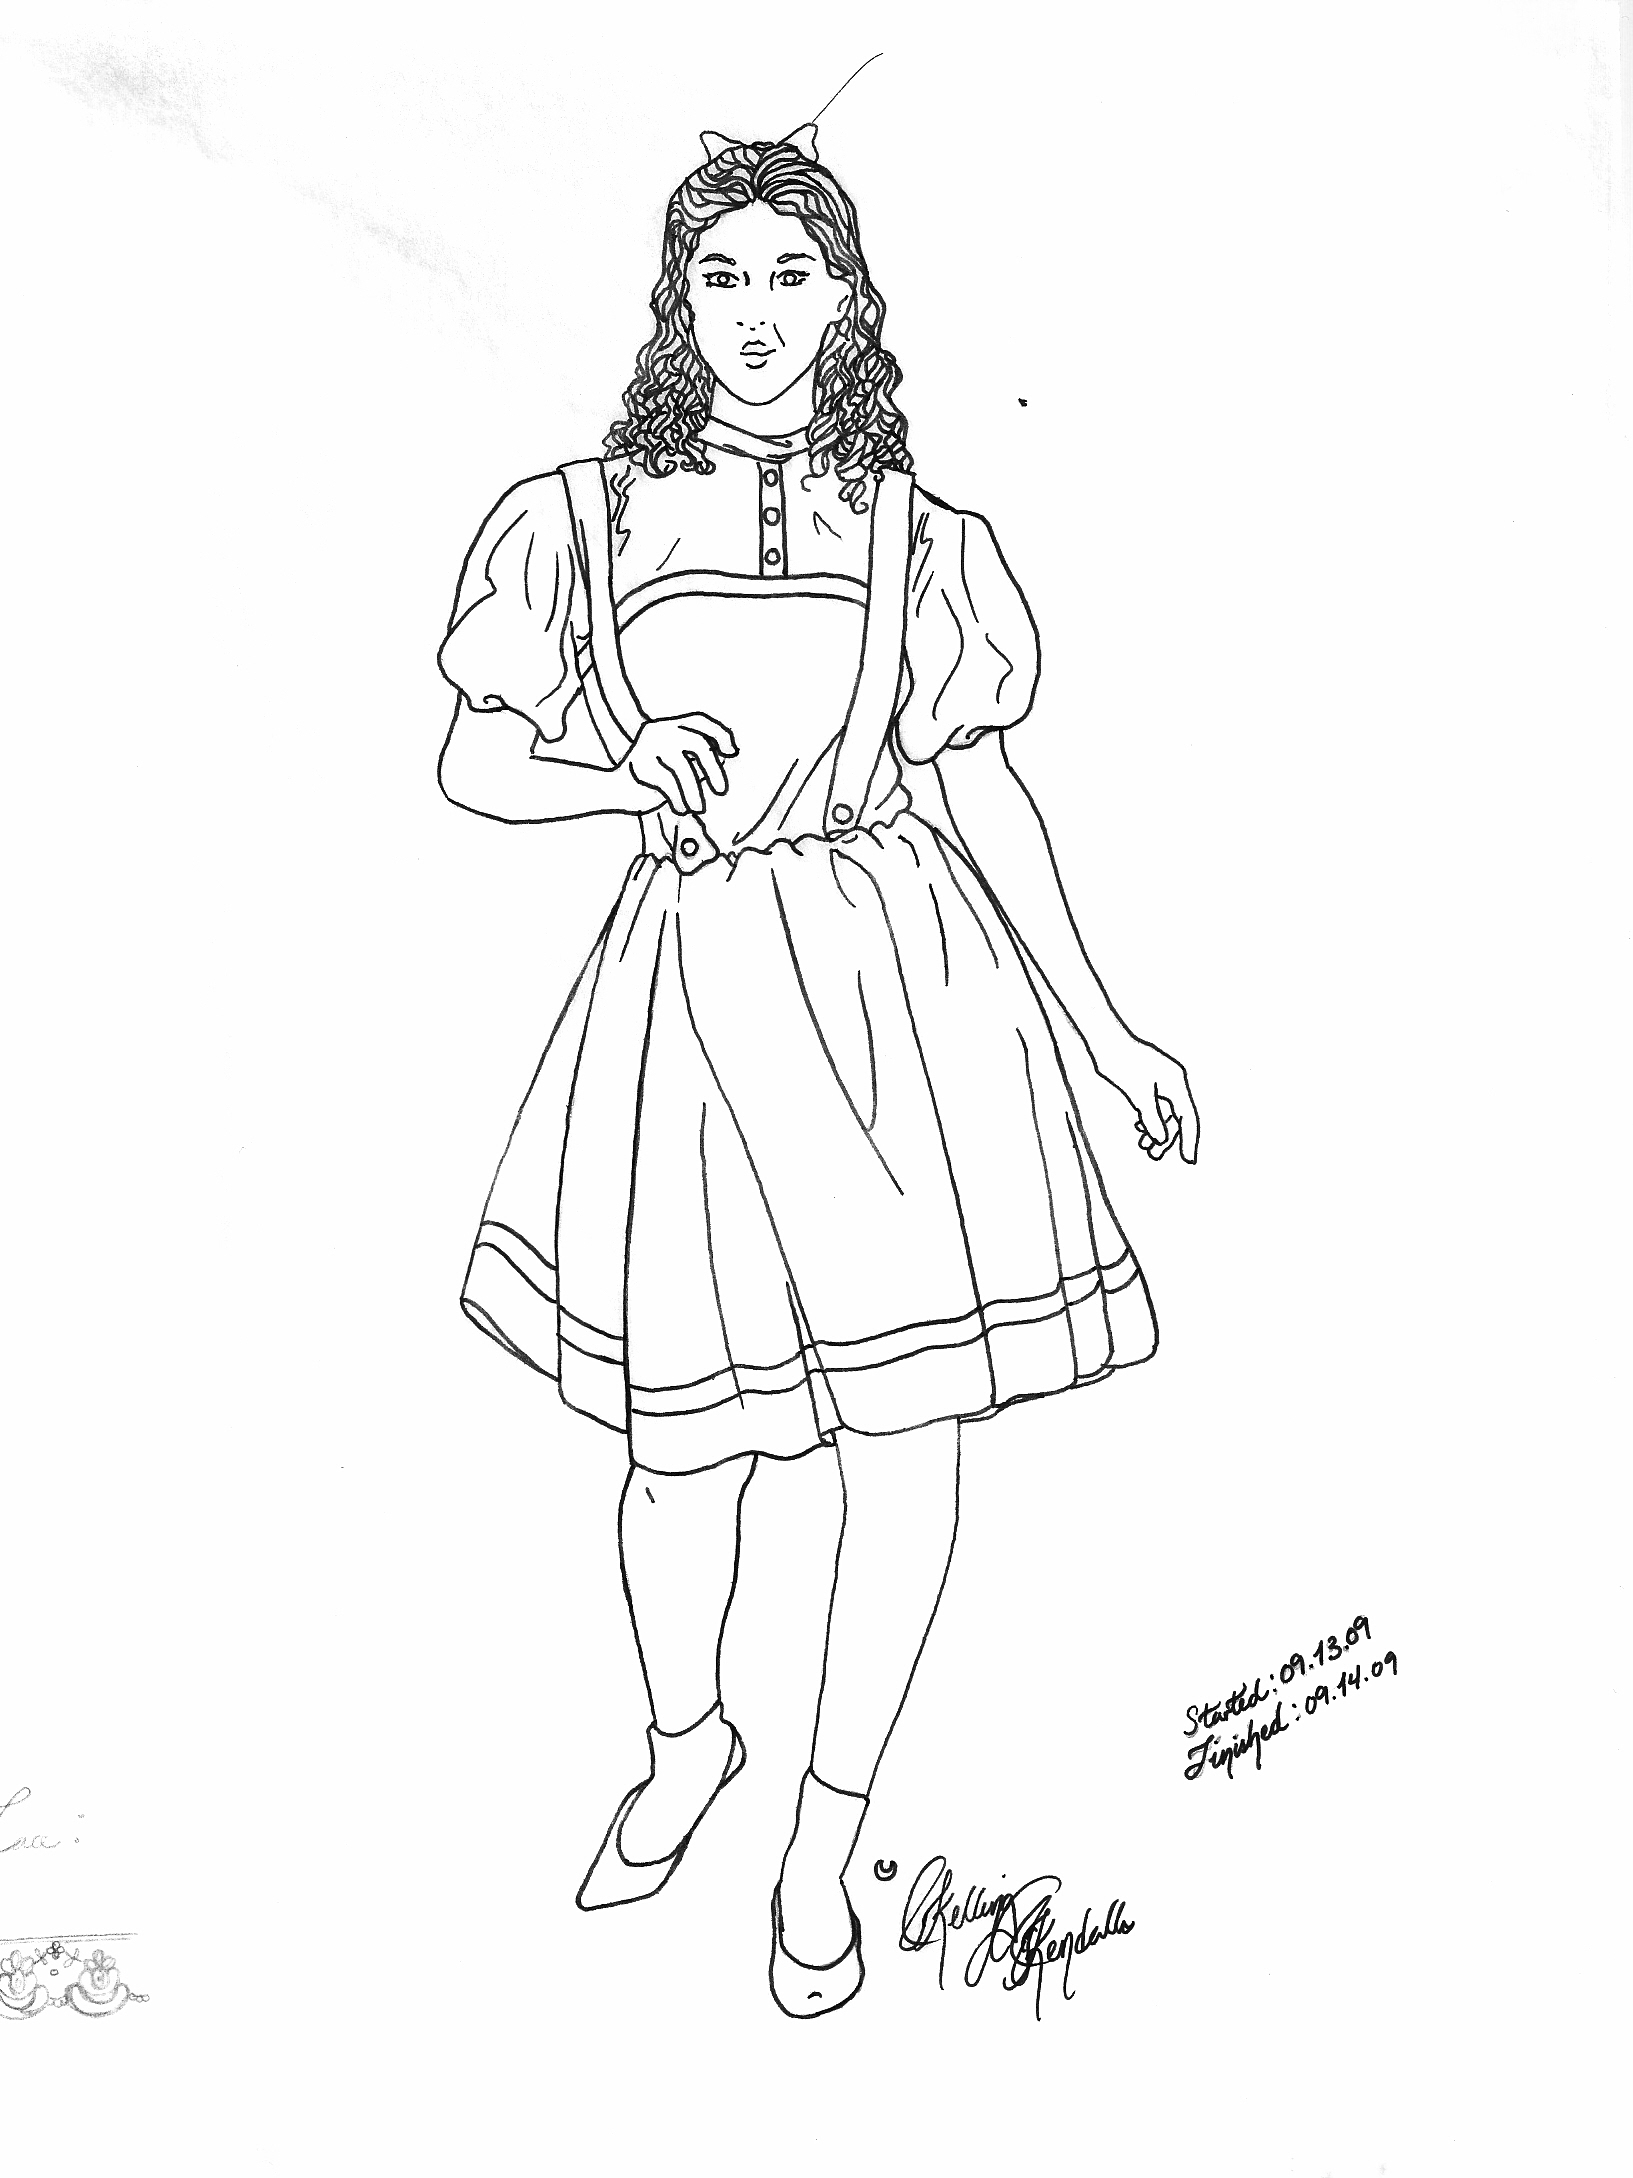 wizard of oz coloring pages dorothy dorothy drawing at getdrawings free download pages dorothy coloring oz wizard of